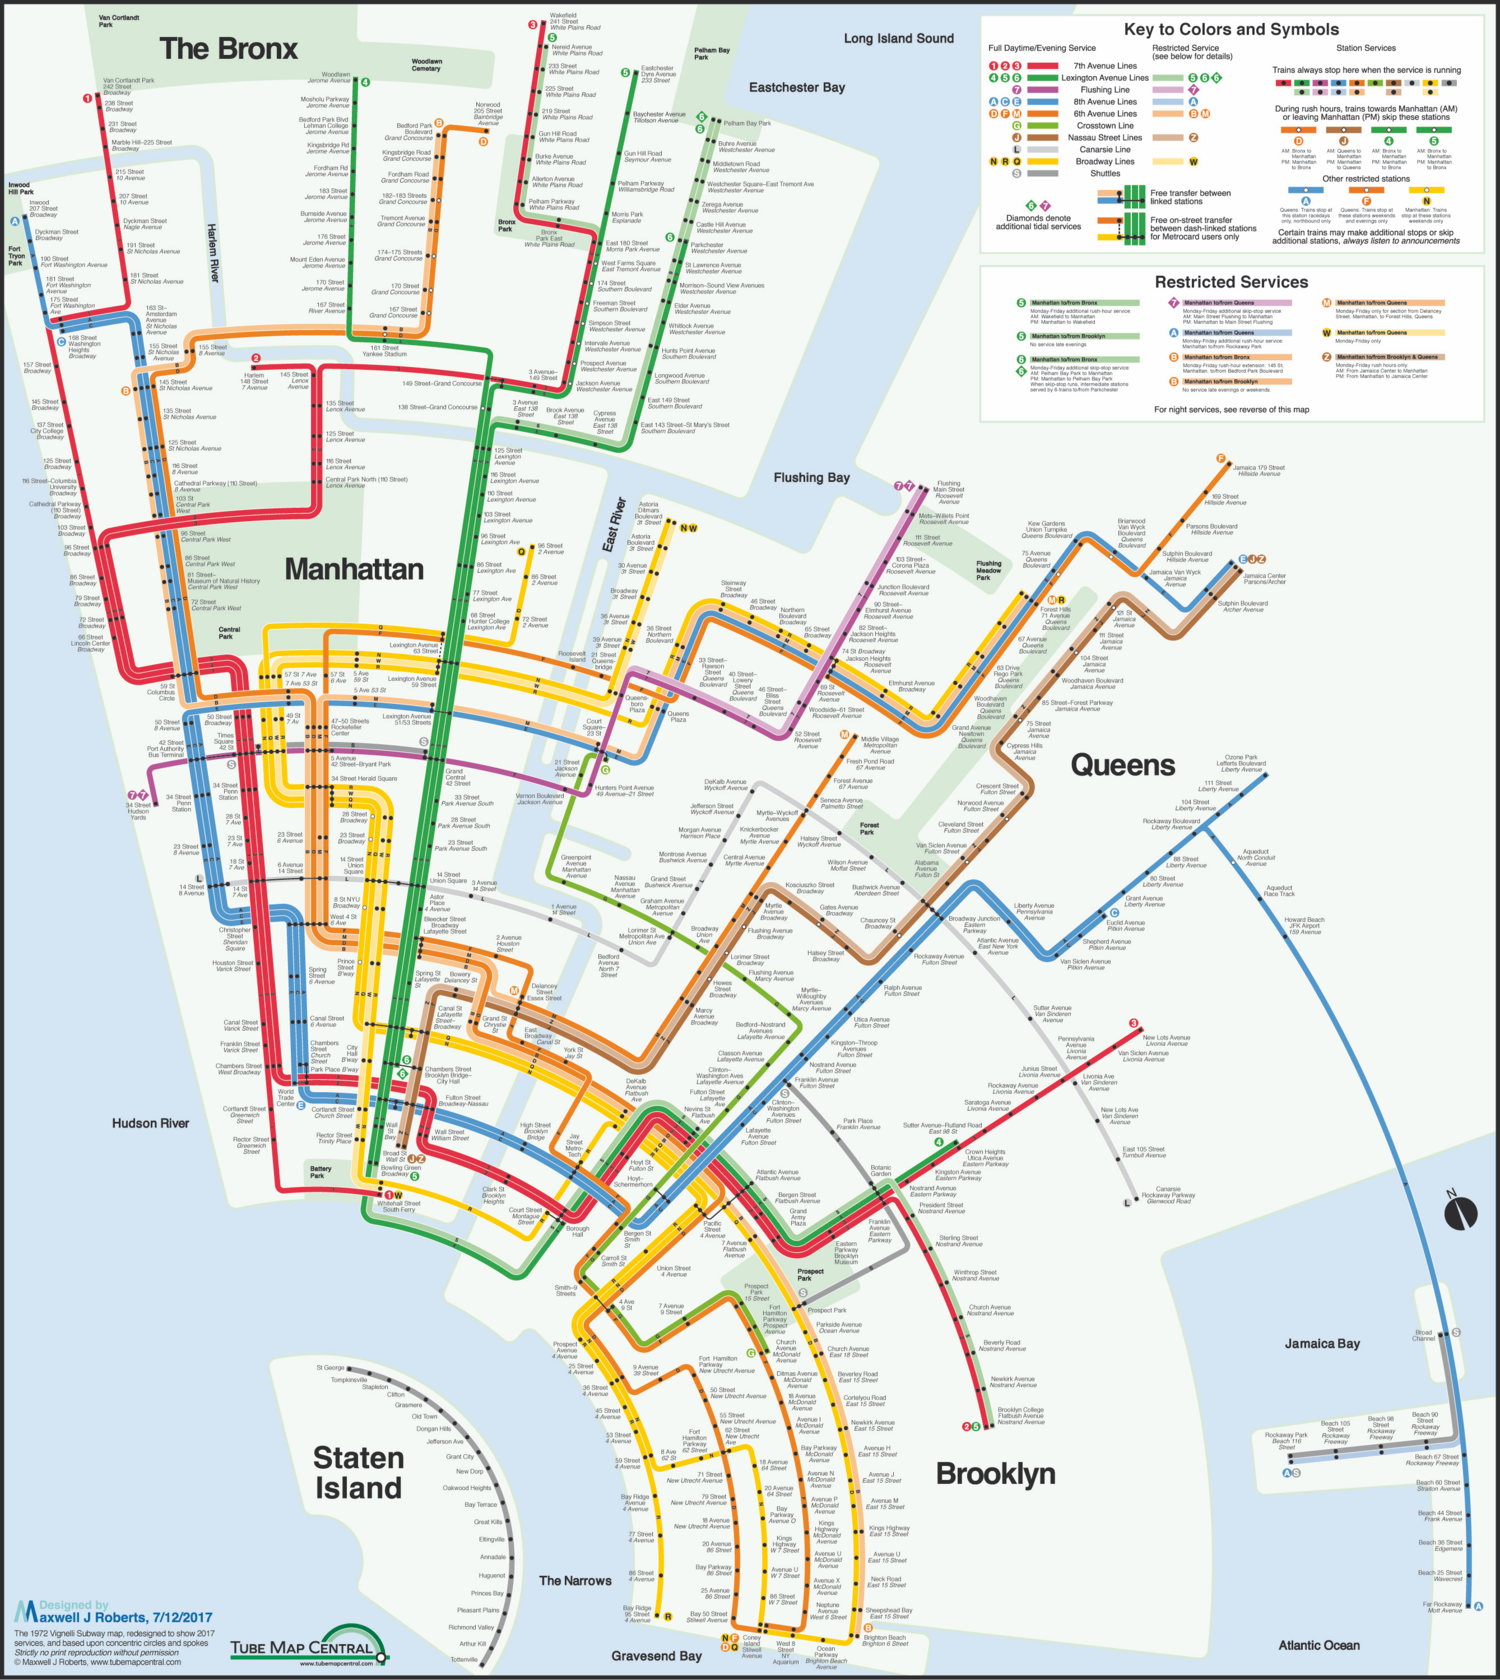 new york city subway concentric circle map in a massimo vignelli style